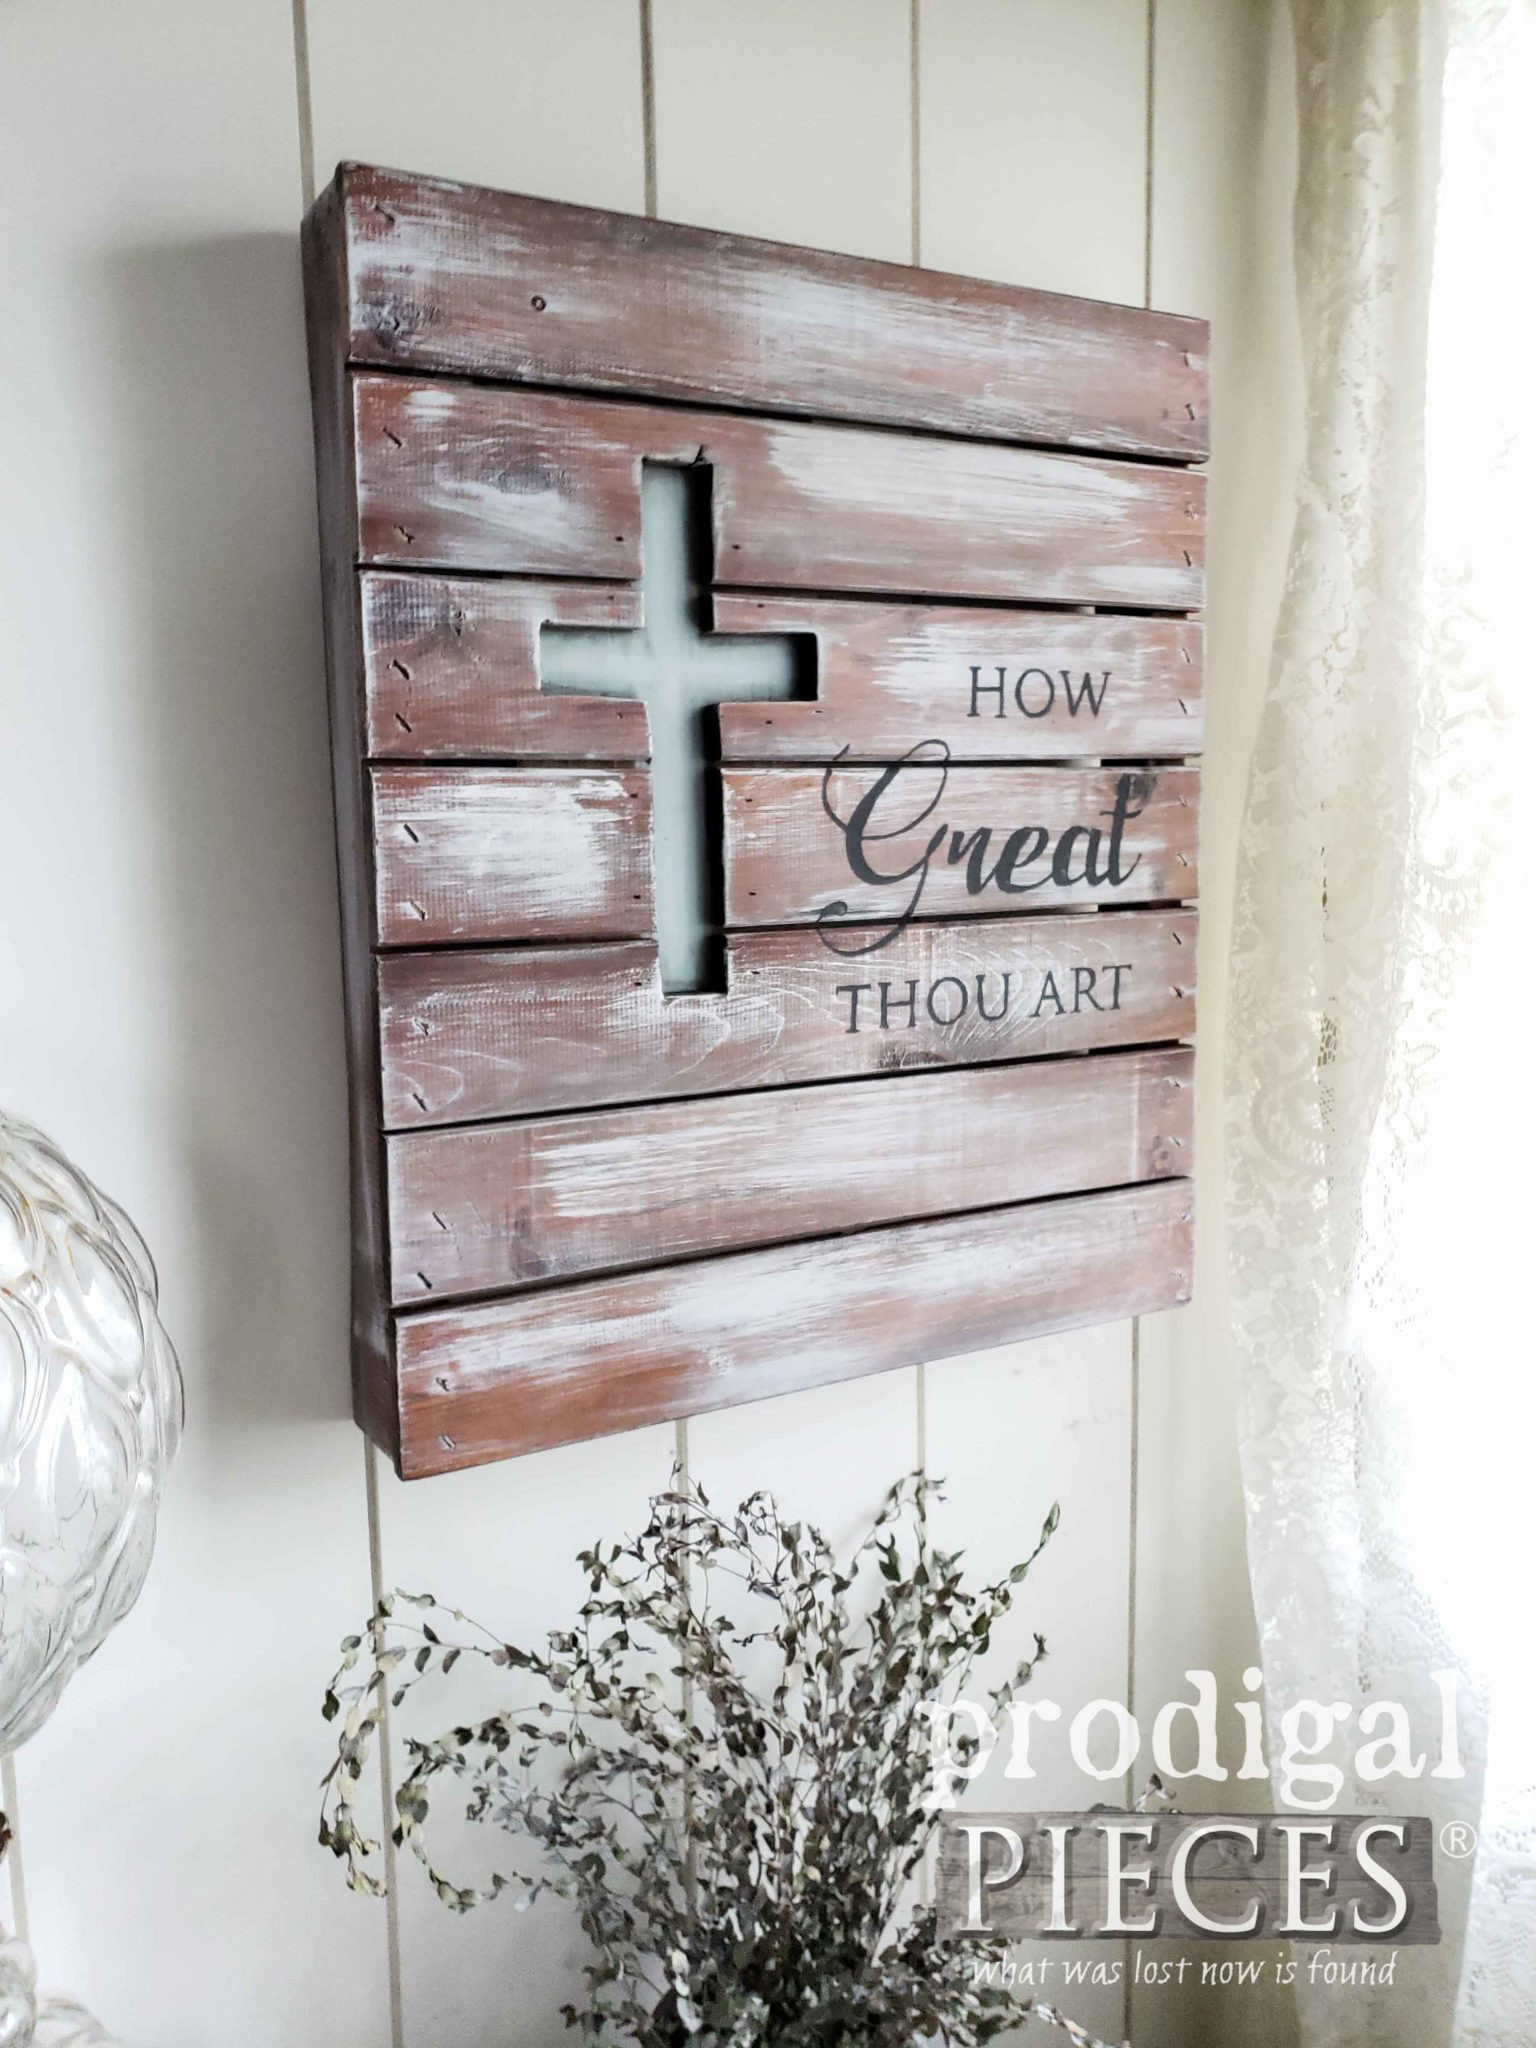 Rustic Pallet Wall Art for Farmhouse Decor | How Great Thou Art Pallet Art by Larissa of Prodigal Pieces | prodigalpieces.com